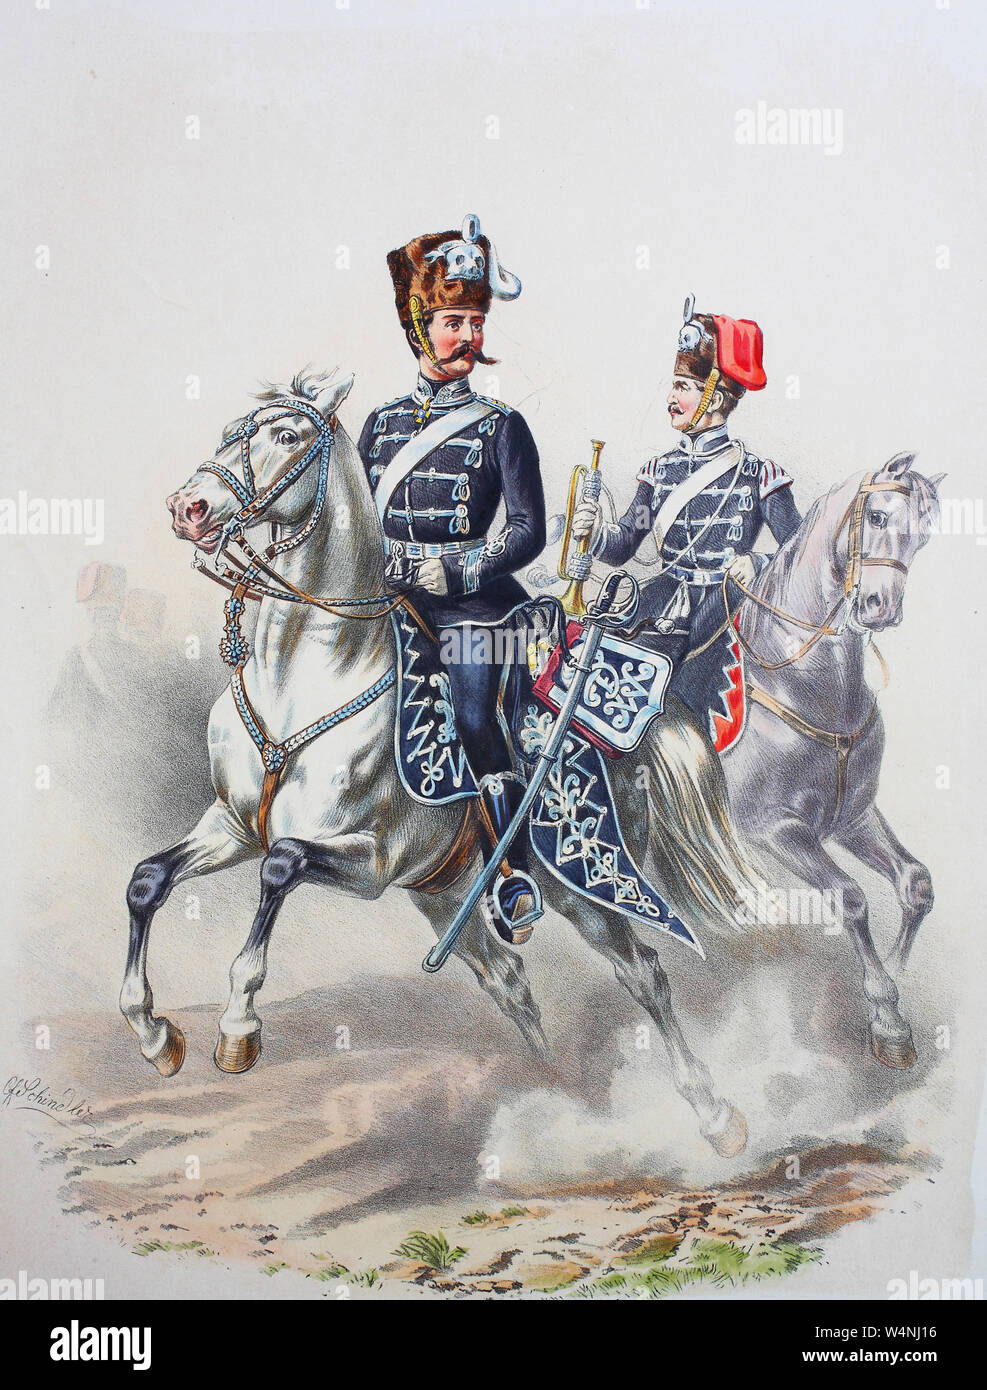 Royal Prussian Army, Guards Corps, Preußens Heer, preussische Garde, Leib Husaren Regiment, Offizier, Trompeter, Digital improved reproduction of an illustration from the 19th century Stock Photo